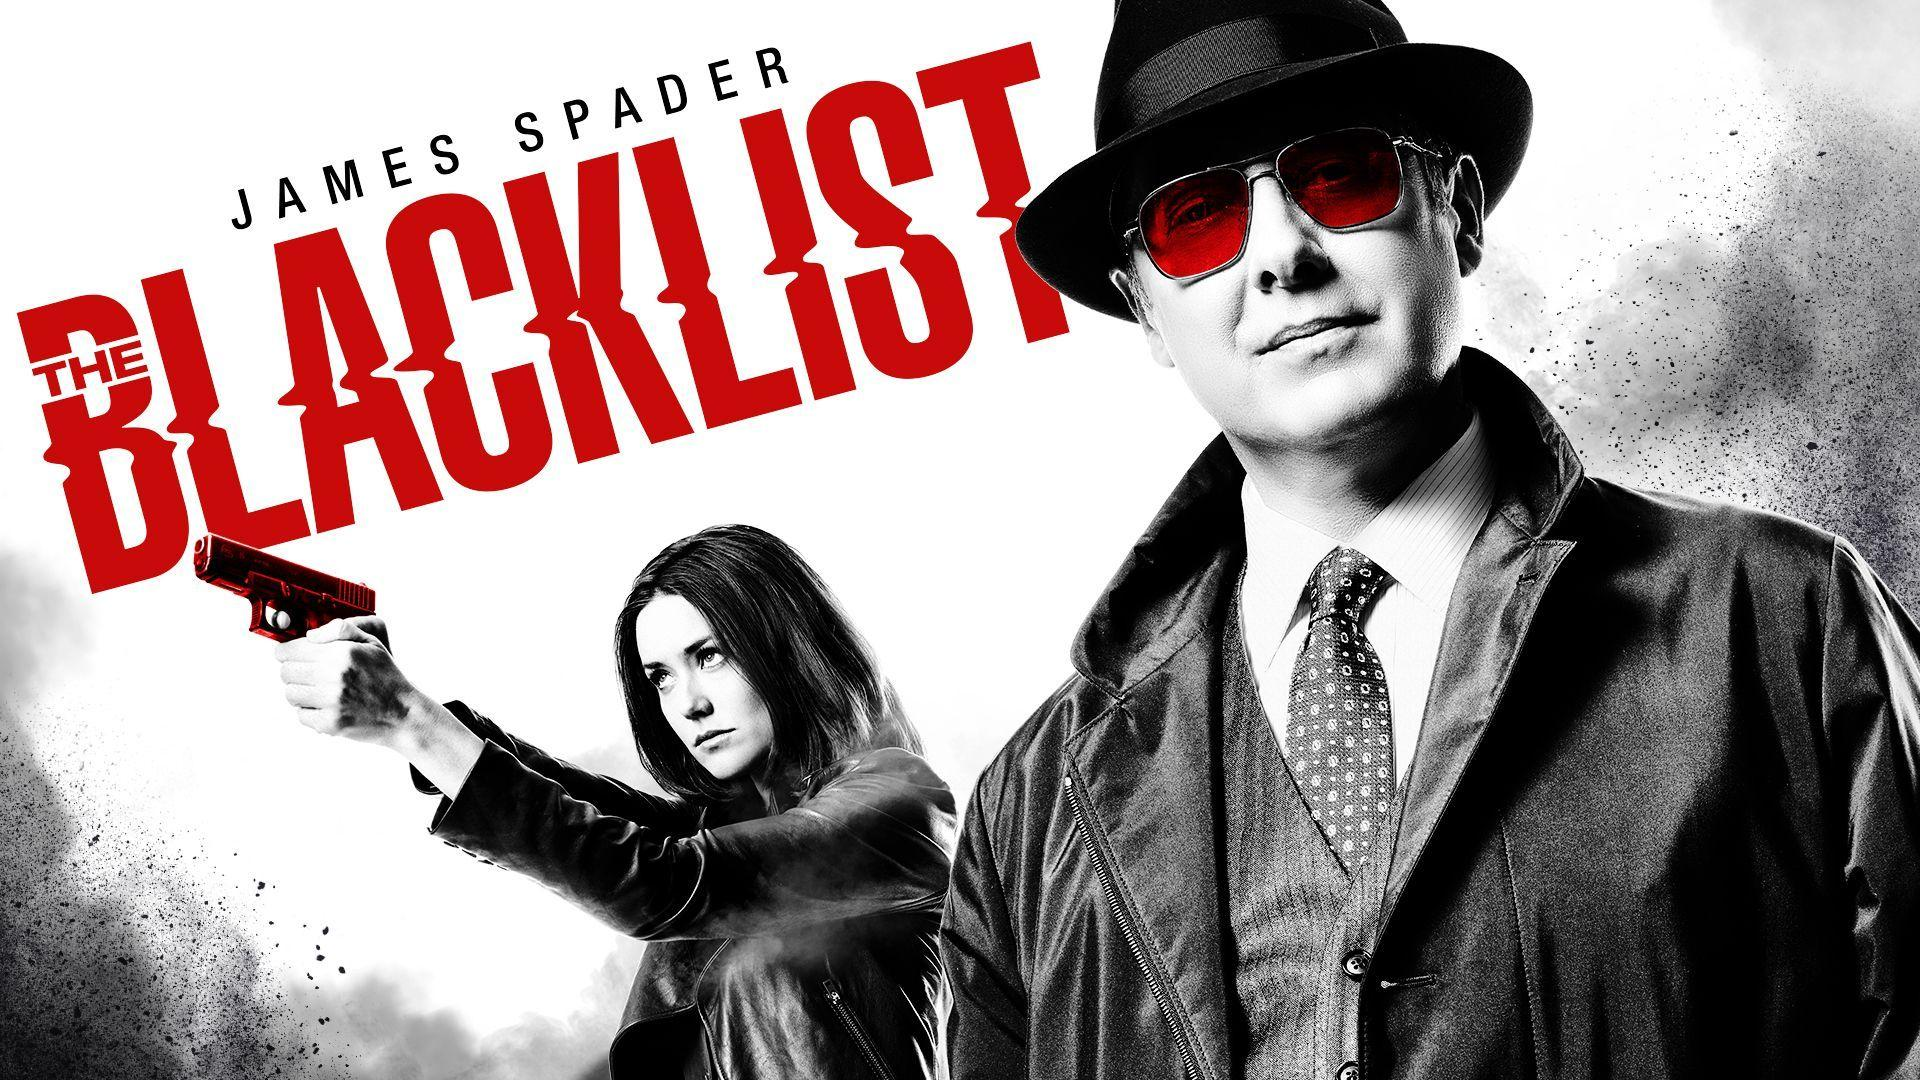 The Blacklist Background 7